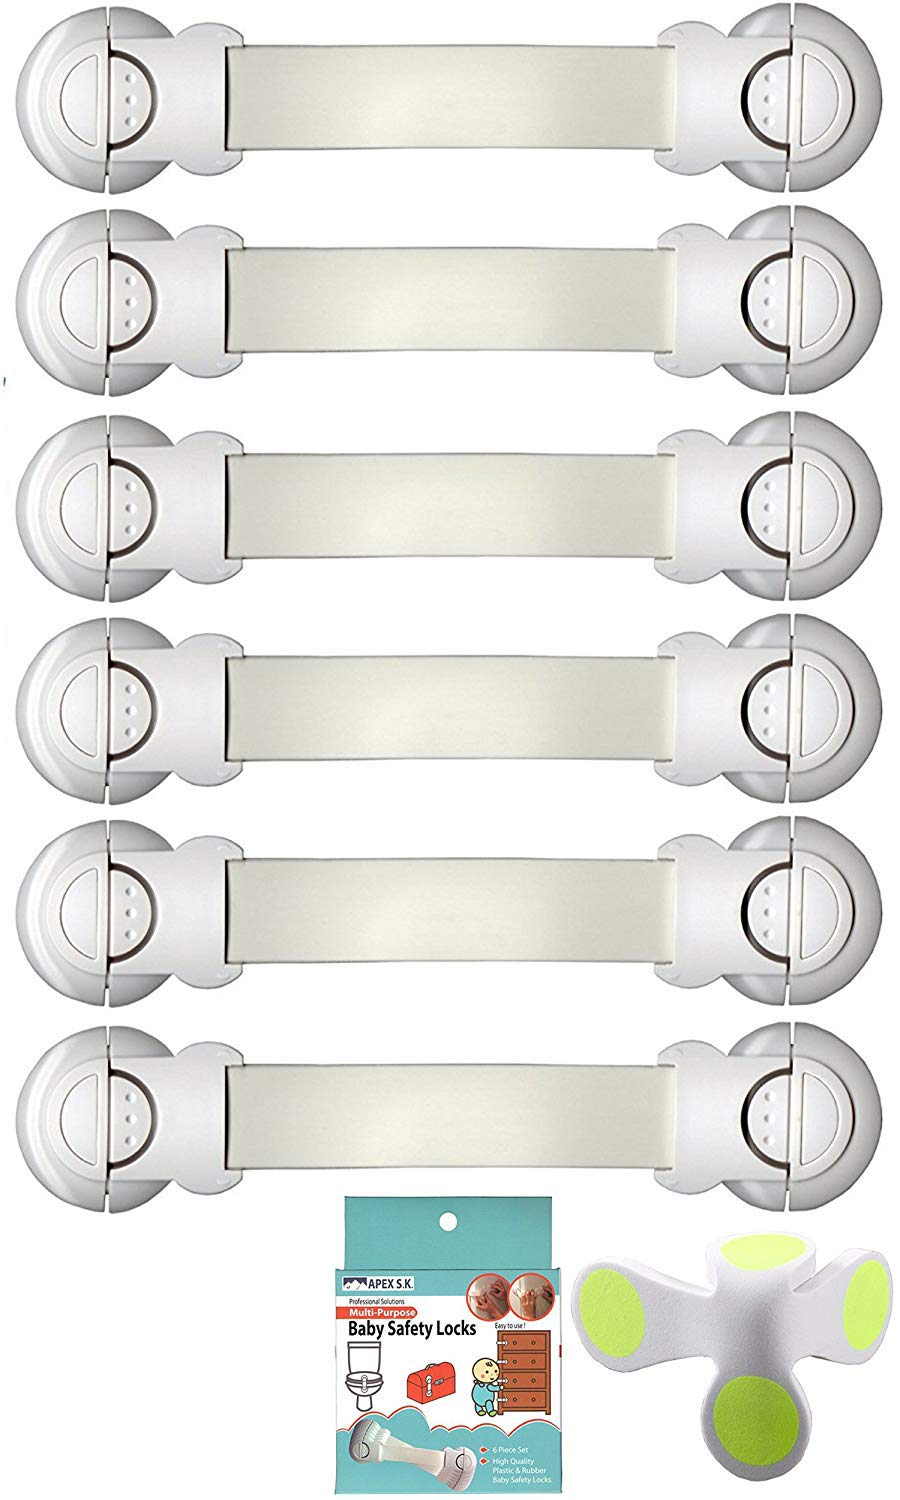 Baby Proof Child and Baby Safety Lock for Toddler Child Proofing Cabinet Cupboard Baby Gate Drawer Toilet Fridge and More 6-Pack Baby Proof Child Security Lock Strap and Latches (White) APEX S.K.